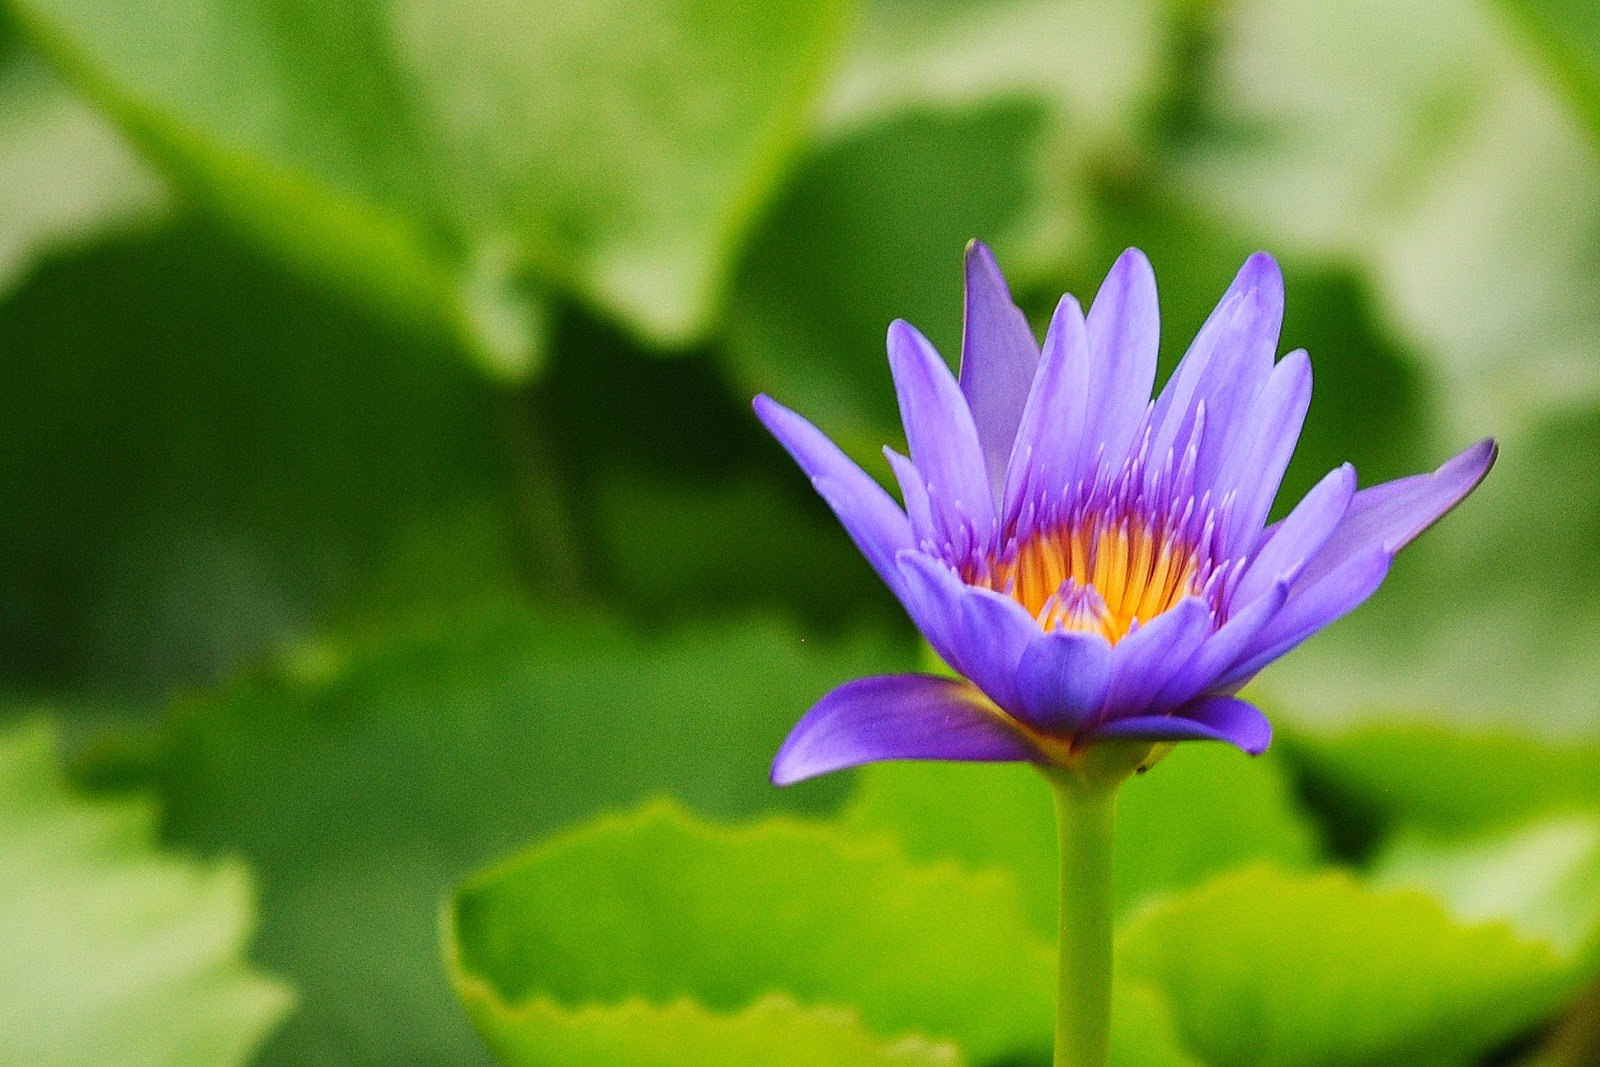 Field Notes And Photos The Jewel In The Heart Of The Lotus